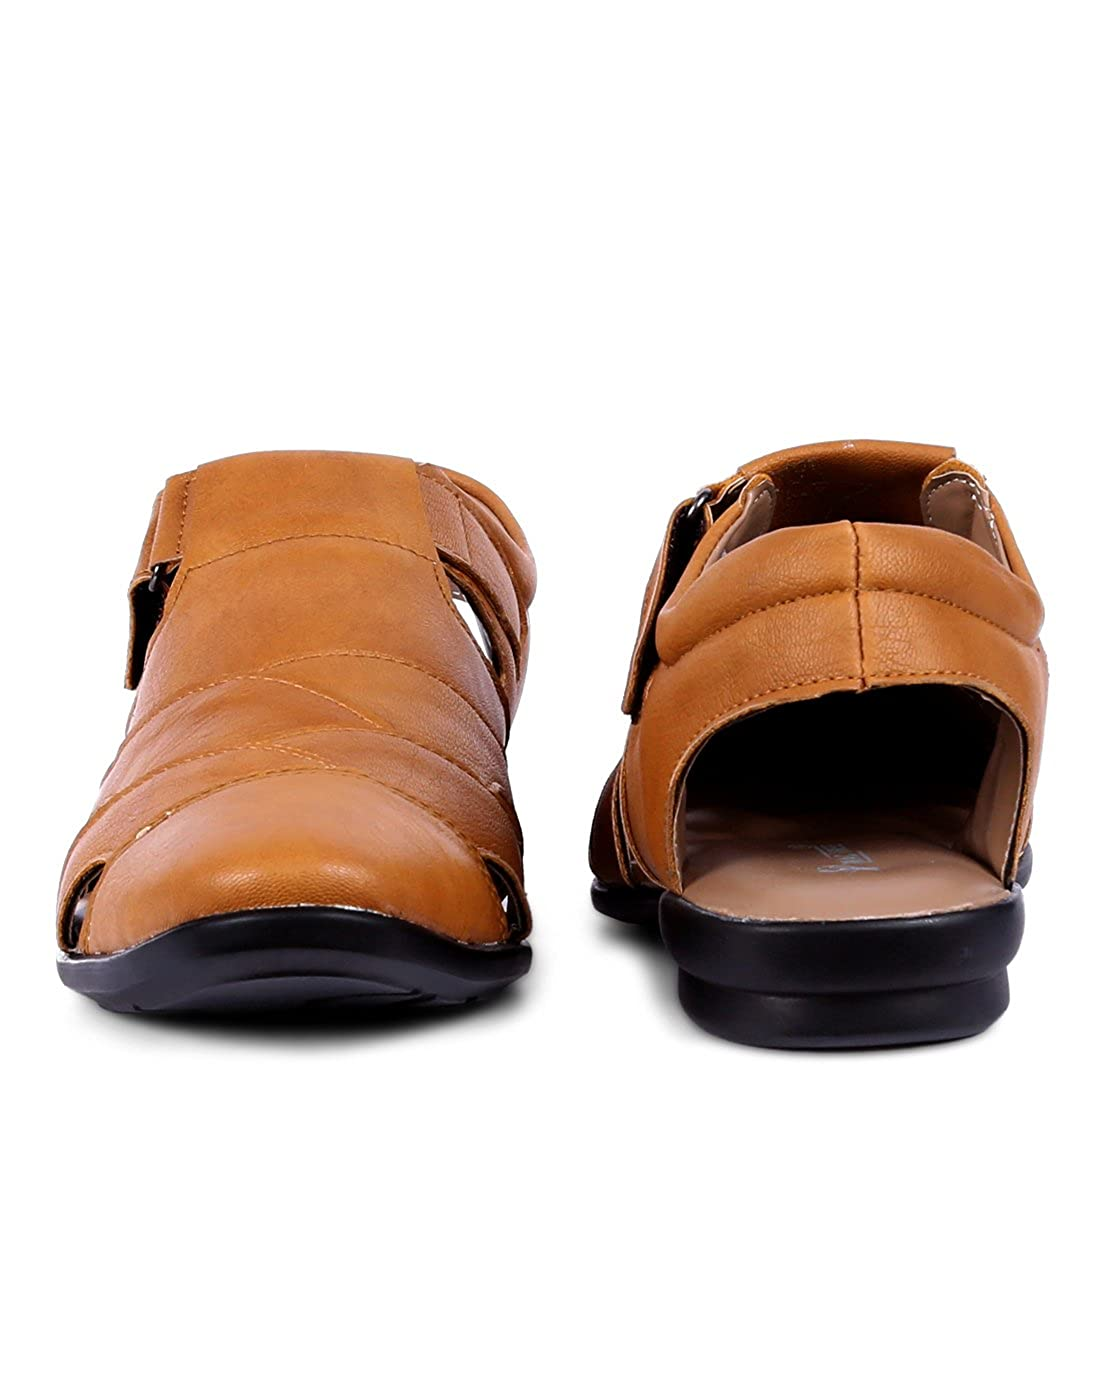 9823b54ba050f EL PASO Men s Faux Leather Tan Exquisite Casual Sandals  Buy Online at Low  Prices in India - Amazon.in